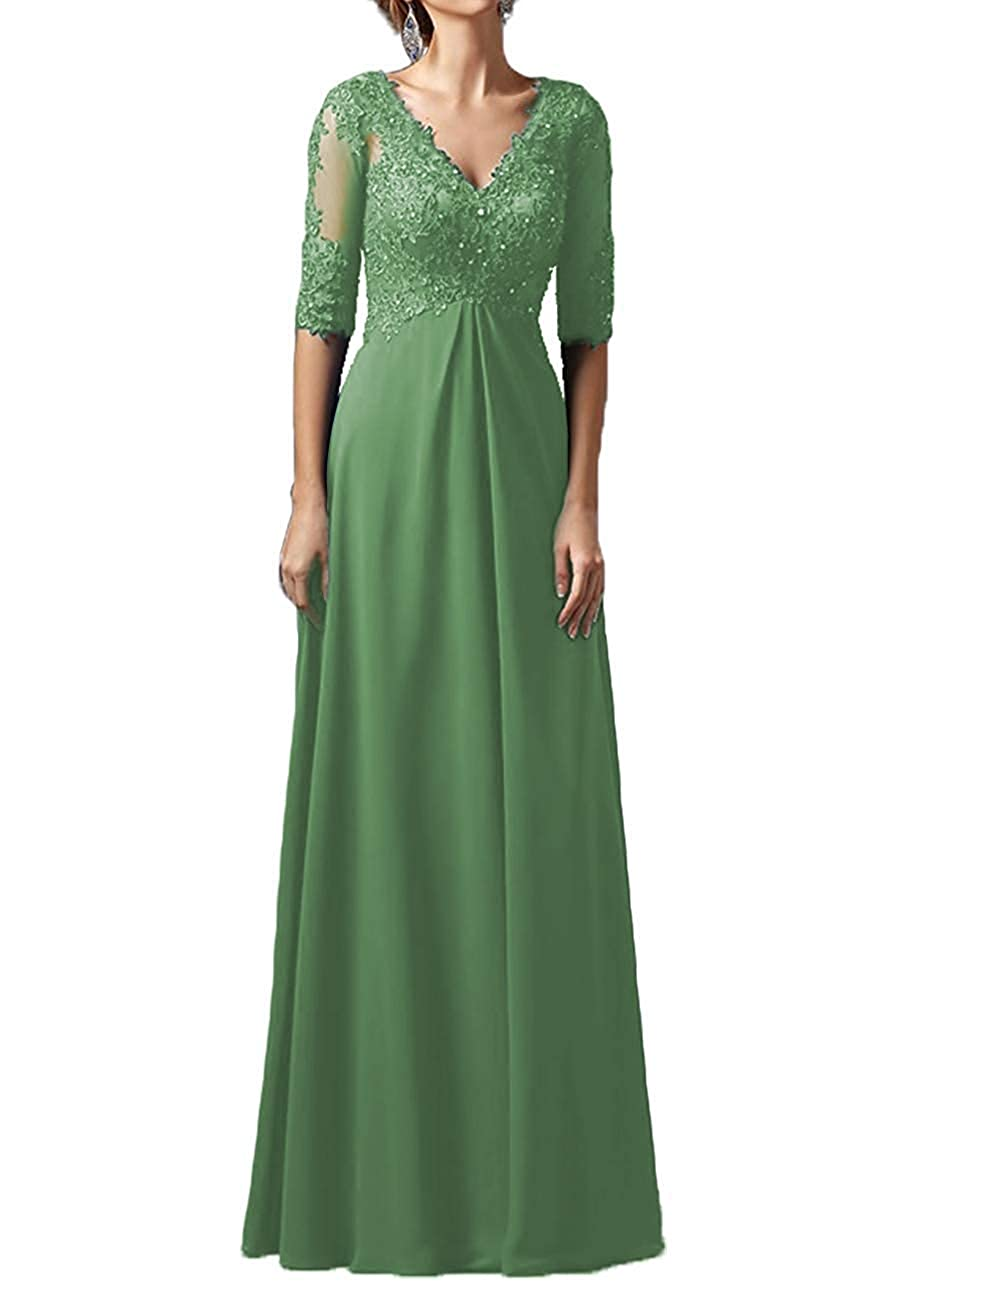 Light Green Mother Dress Long Sleeves V Neck Plus Size Mother of The Bride Dress Formal Party Evening Gowns